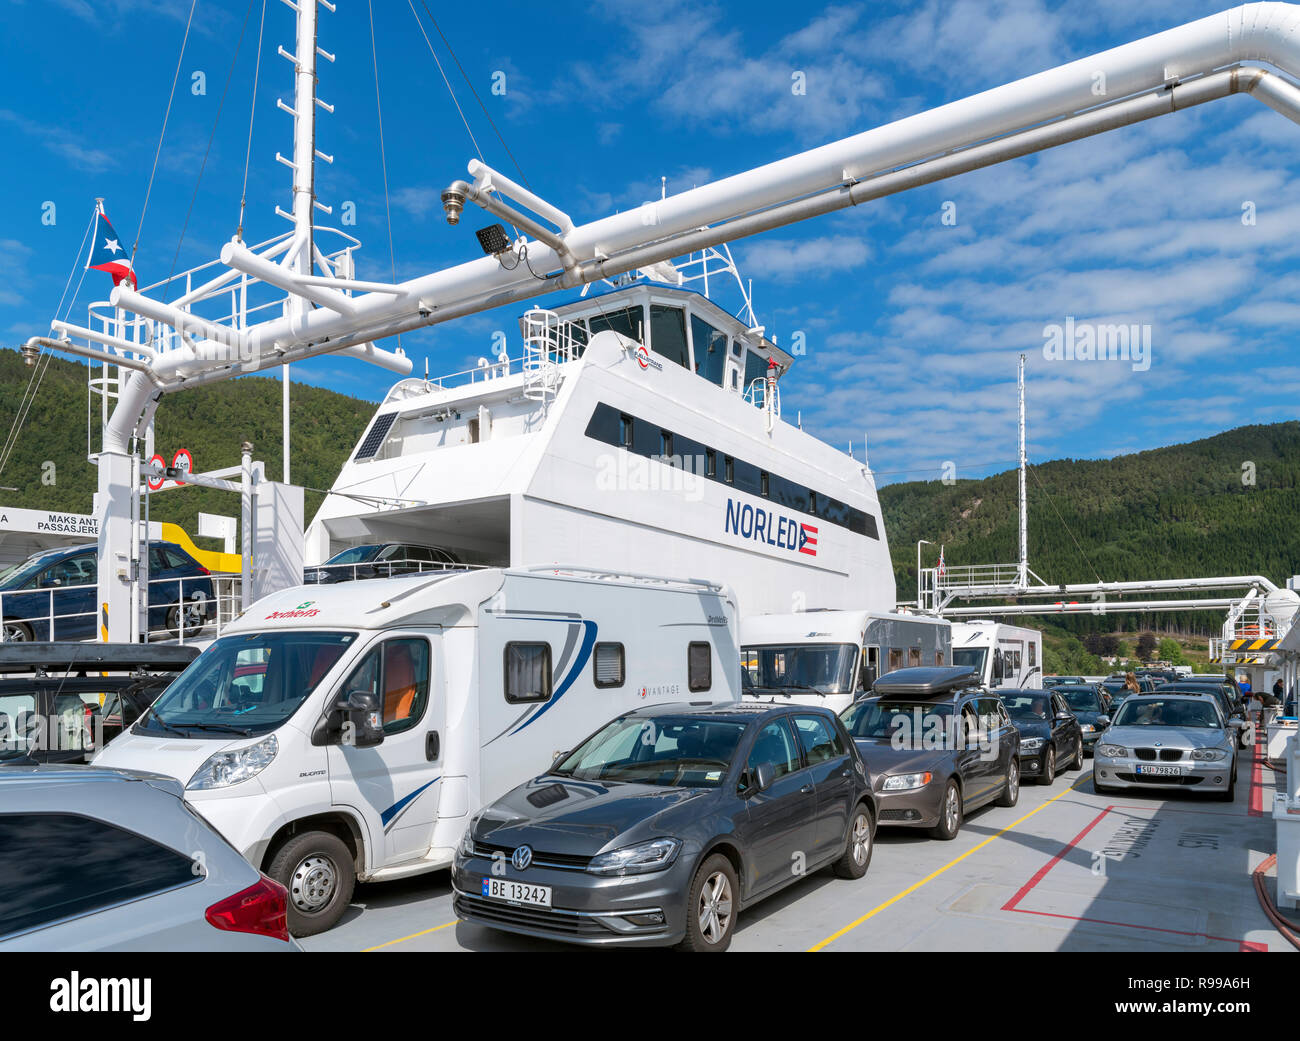 Cars and camper vans on the Lavik to Ytre Oppedal ferry (route E39), Sognefjord, Sogn og Fjordane, Norway - Stock Image